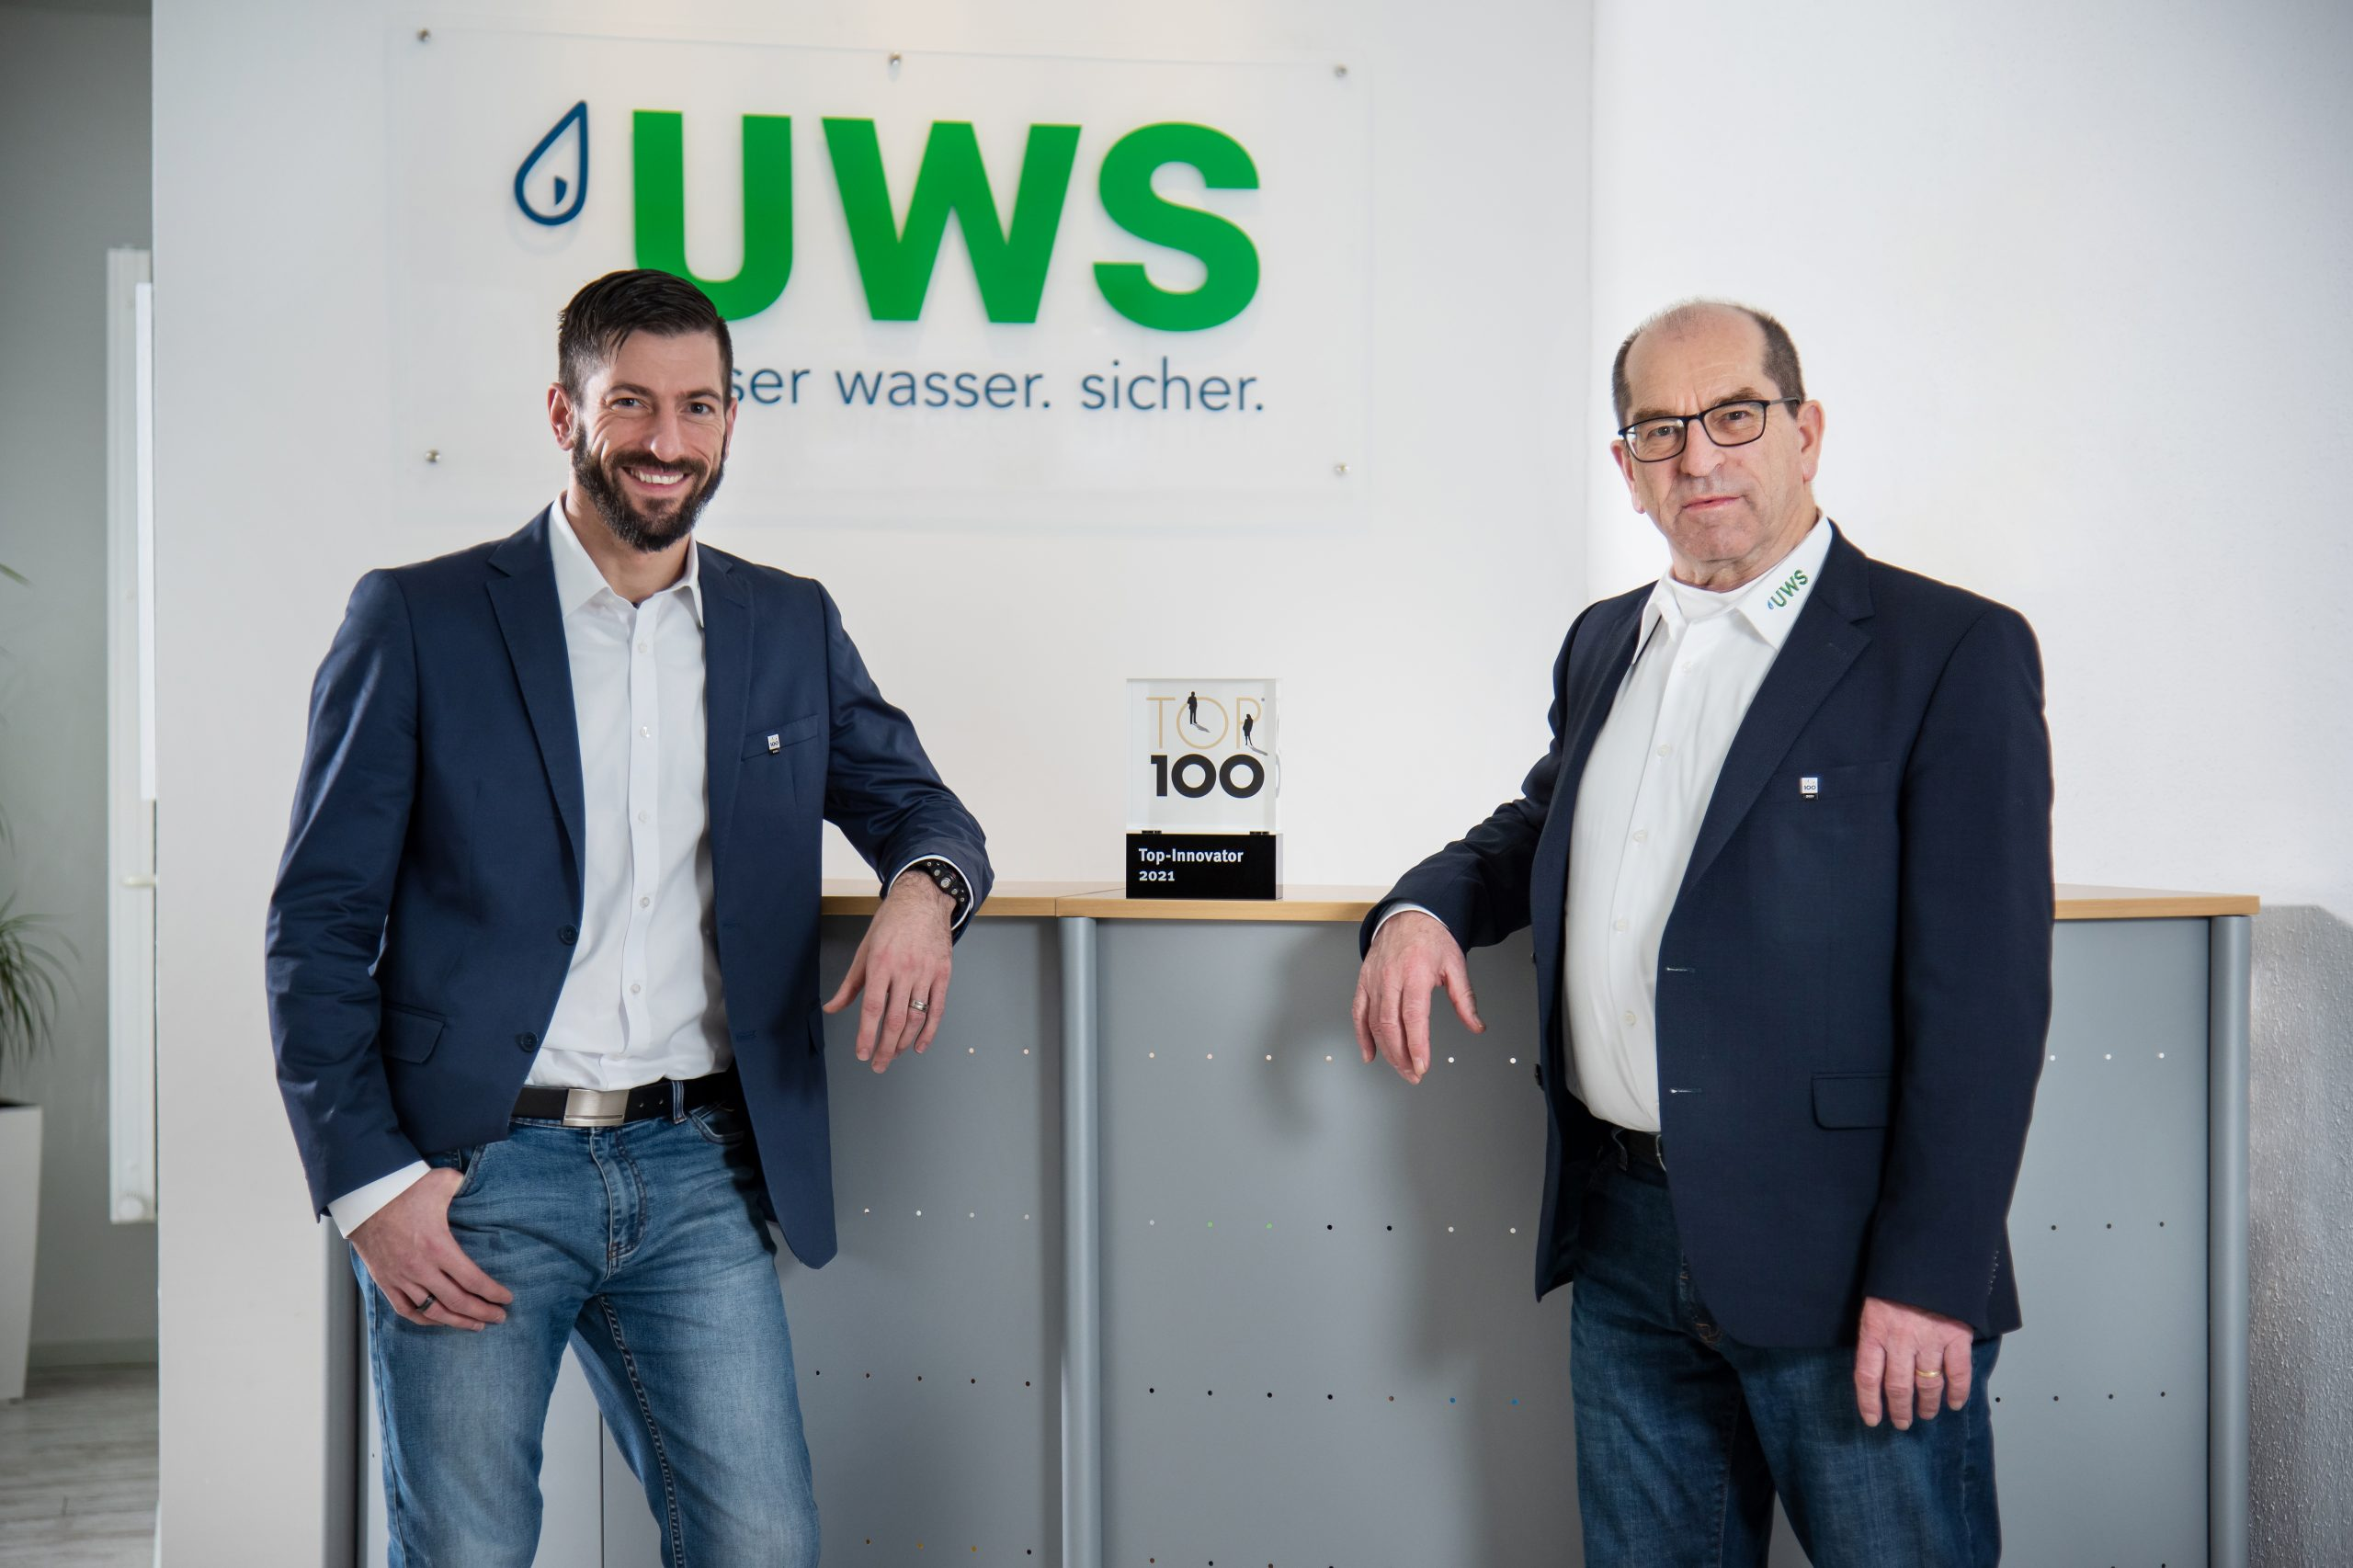 UWS Technologie is one of the 100 most innovative companies in Germany